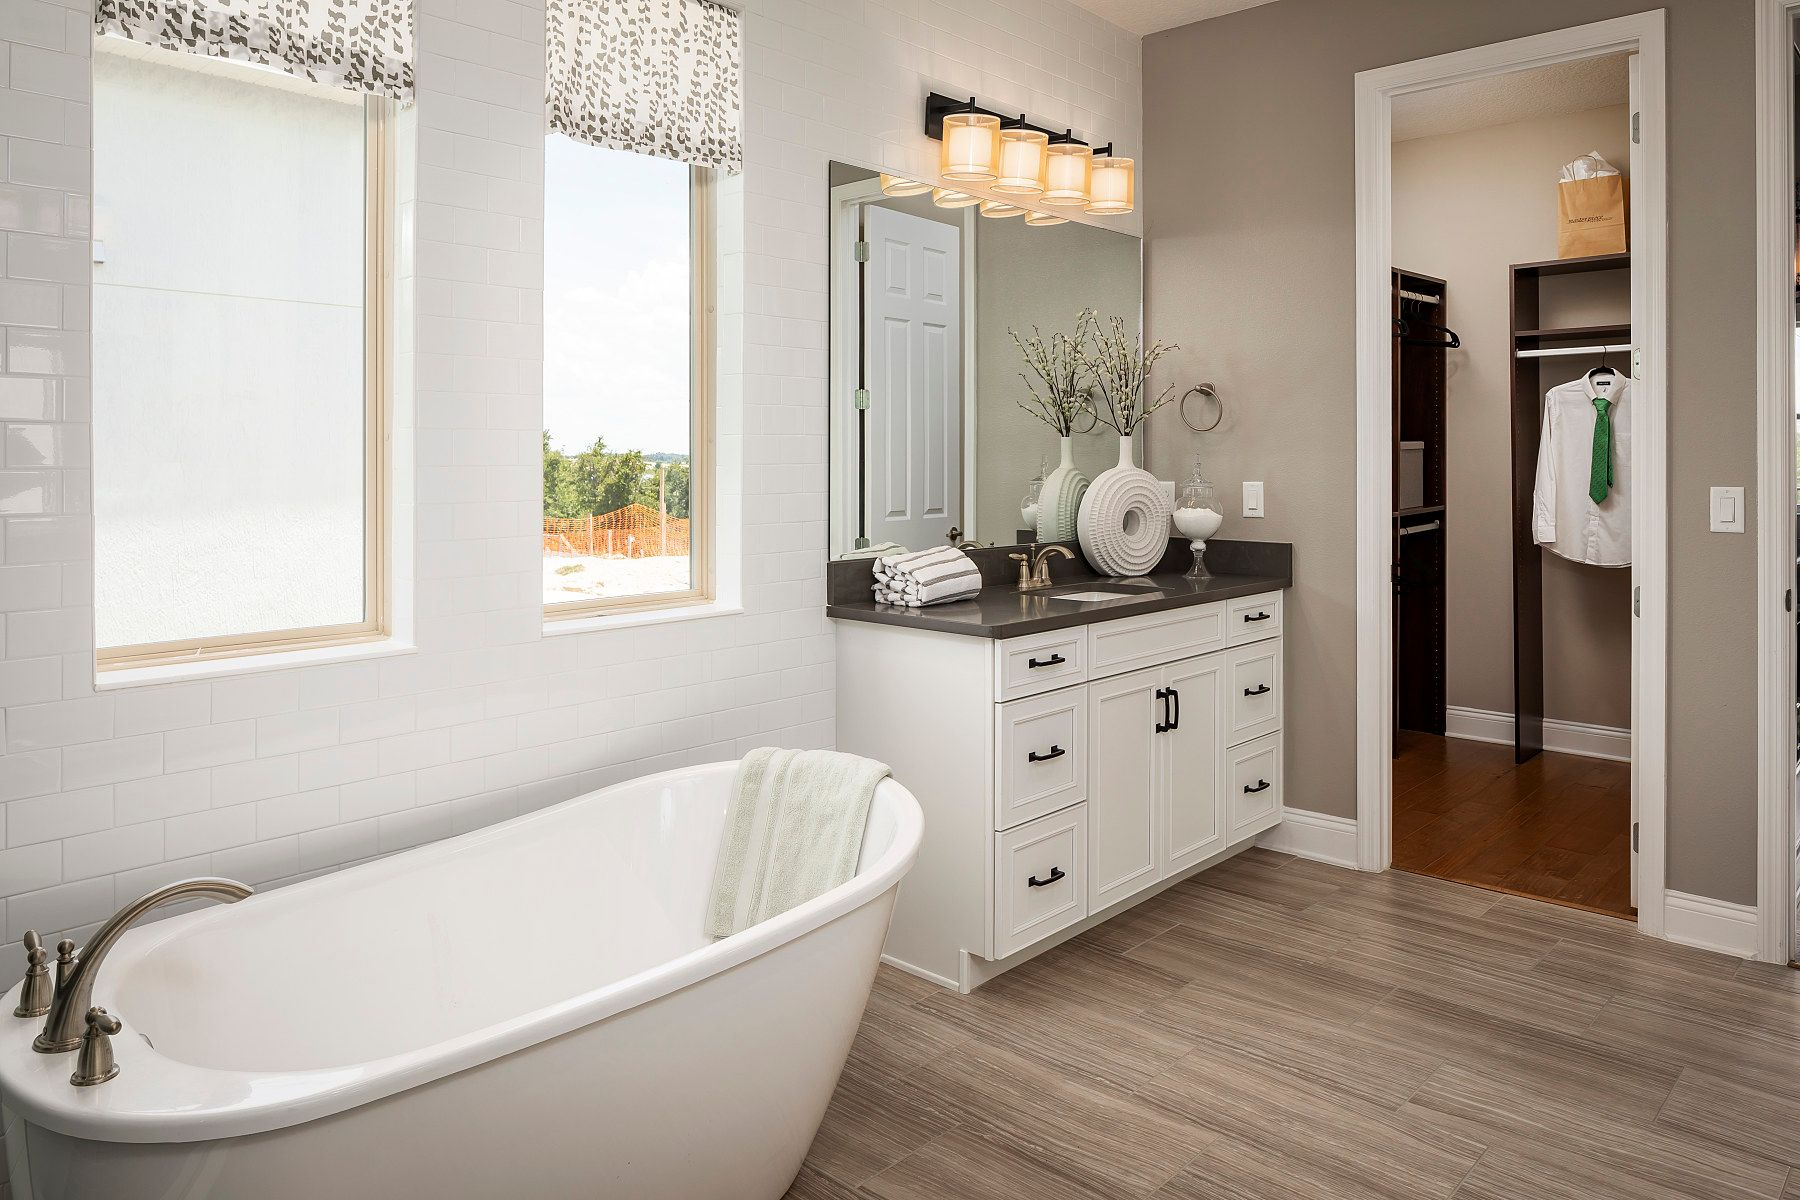 Bathroom featured in the Brookhaven Fl By M/I Homes in Orlando, FL